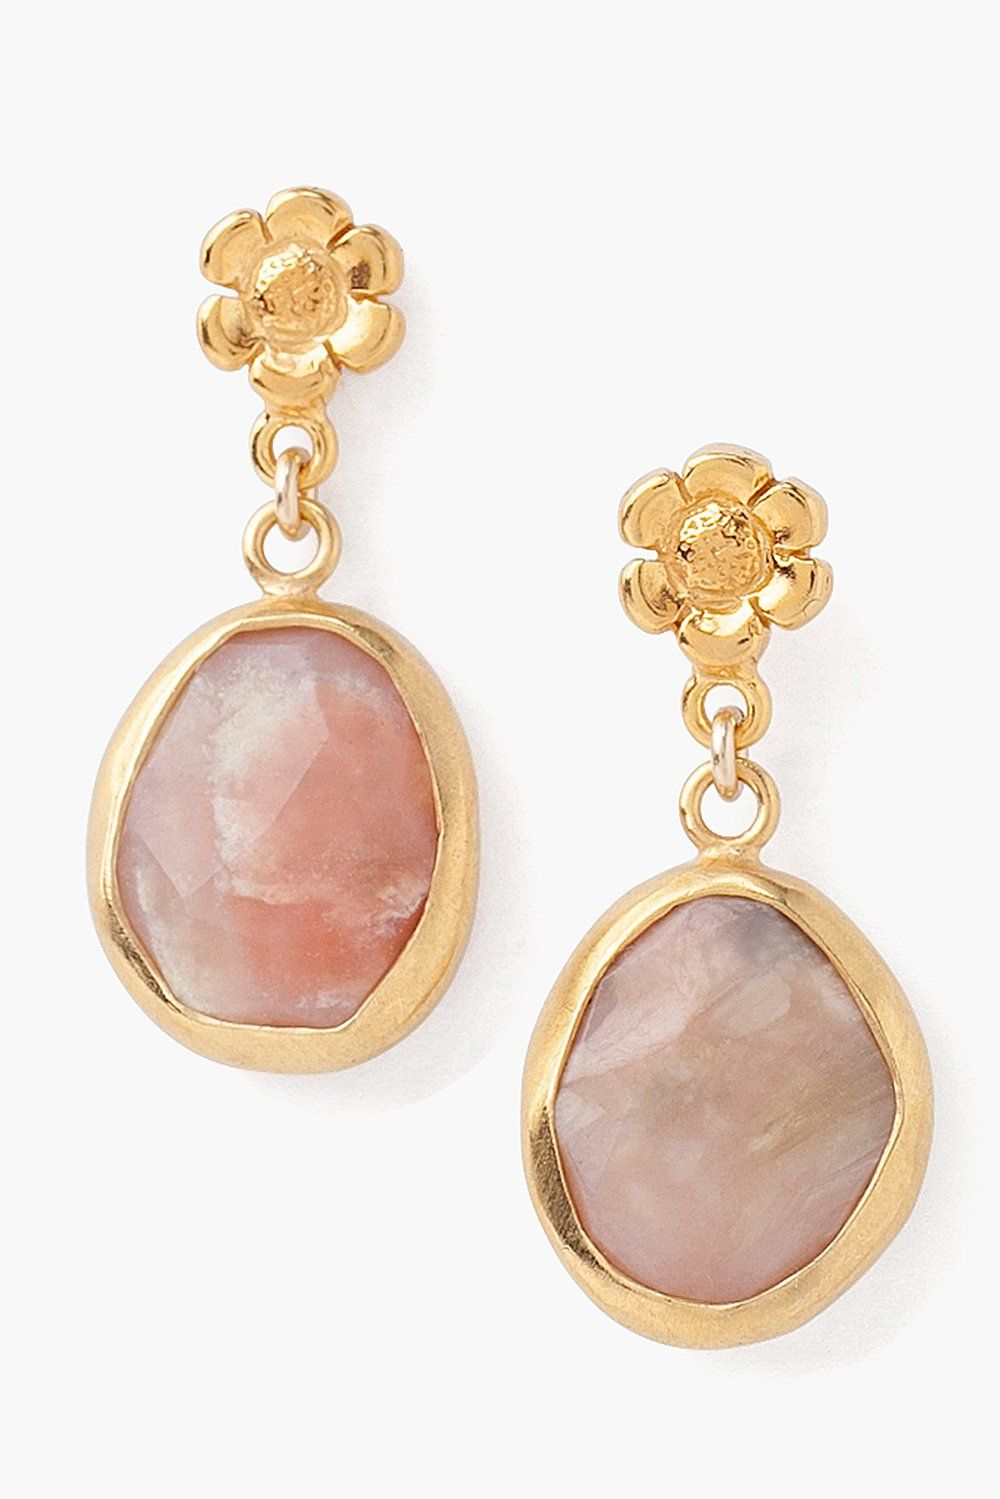 Tiered Flower and Pink Opal Earrings